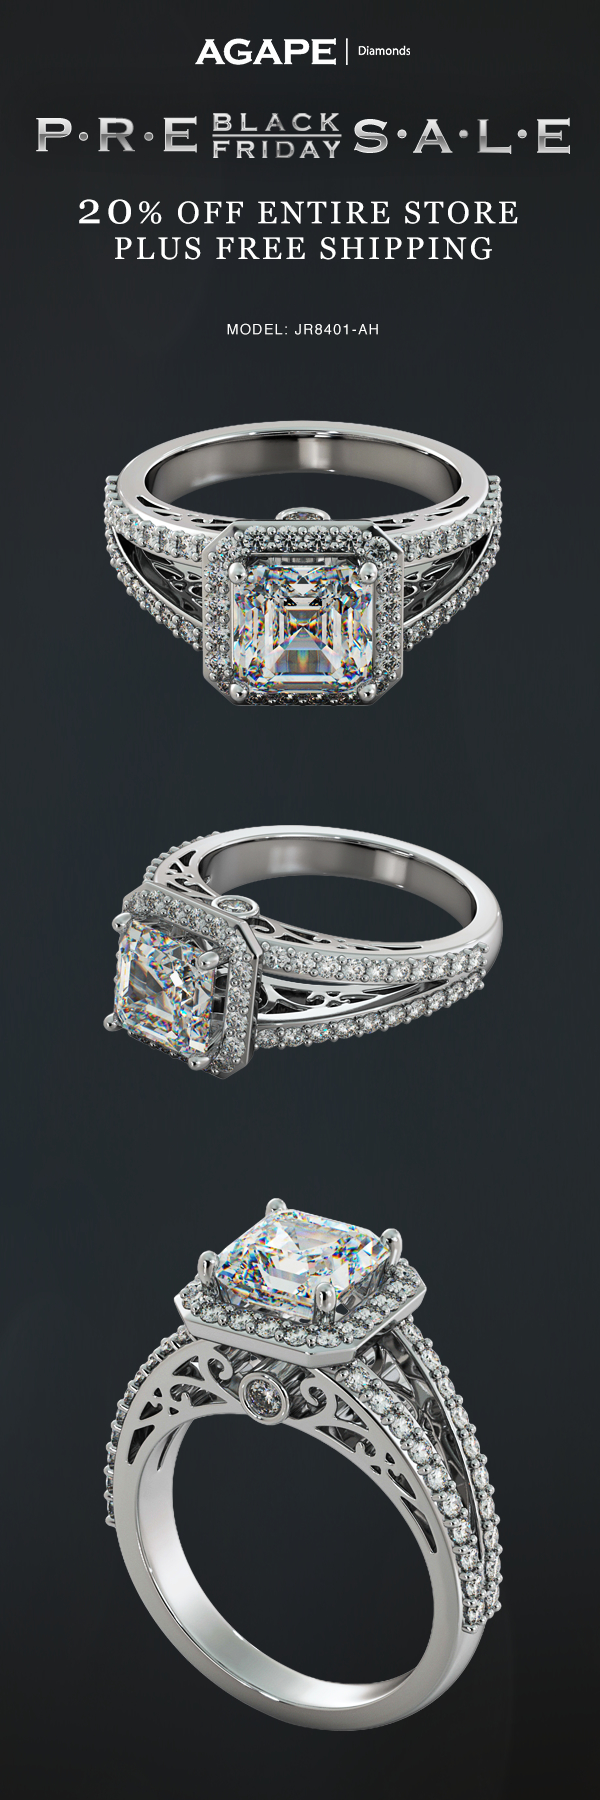 One Of Our Feature Rings For Pre Black Friday 20 Off Entire Site Plus Receive Free 2 0ct Round Cut Stud Earrings In 14k White Gold And